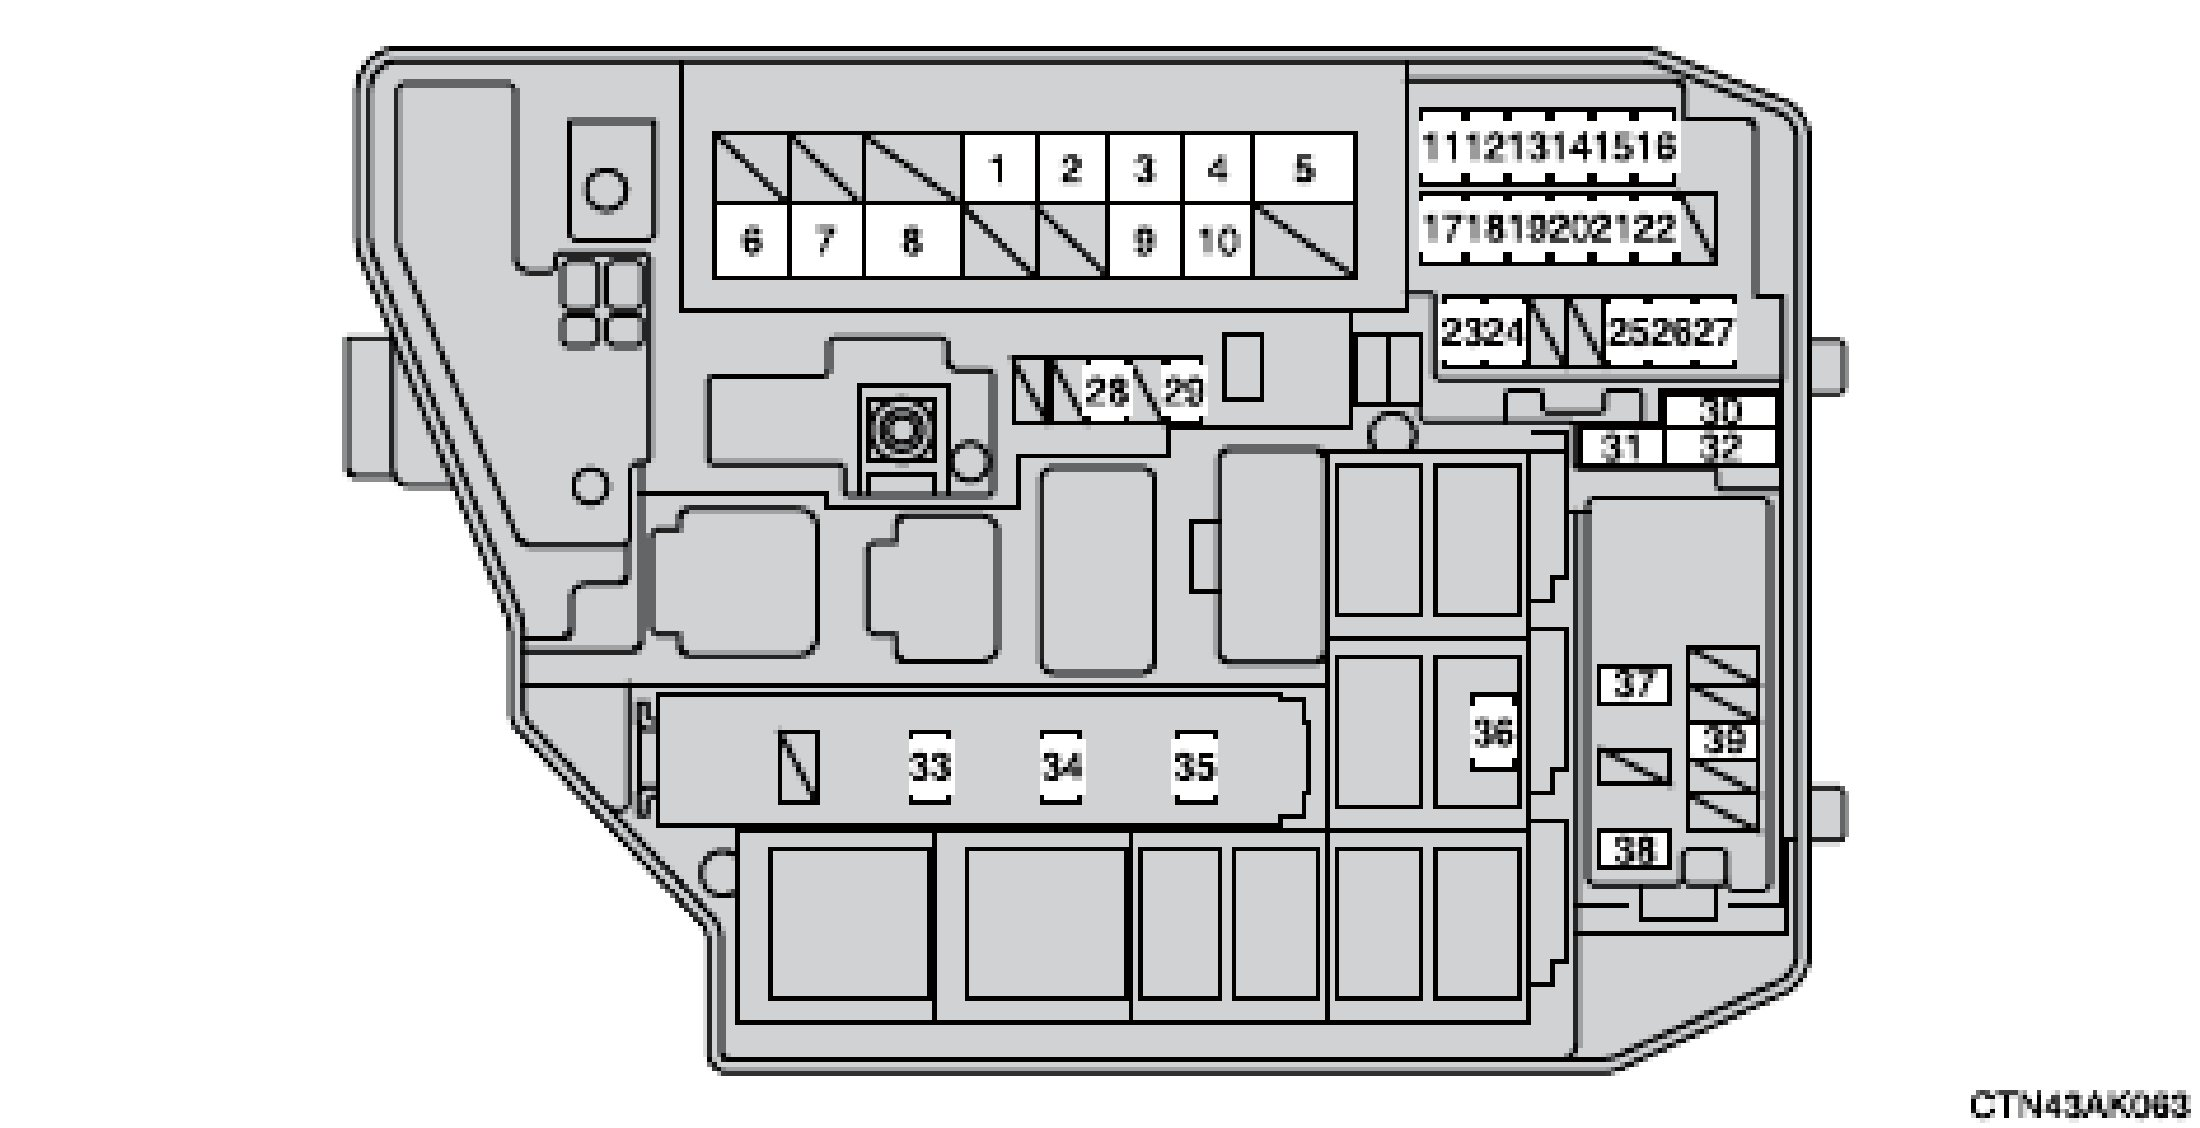 toyota highlander engine image details 2003 toyota highlander fuse box diagram